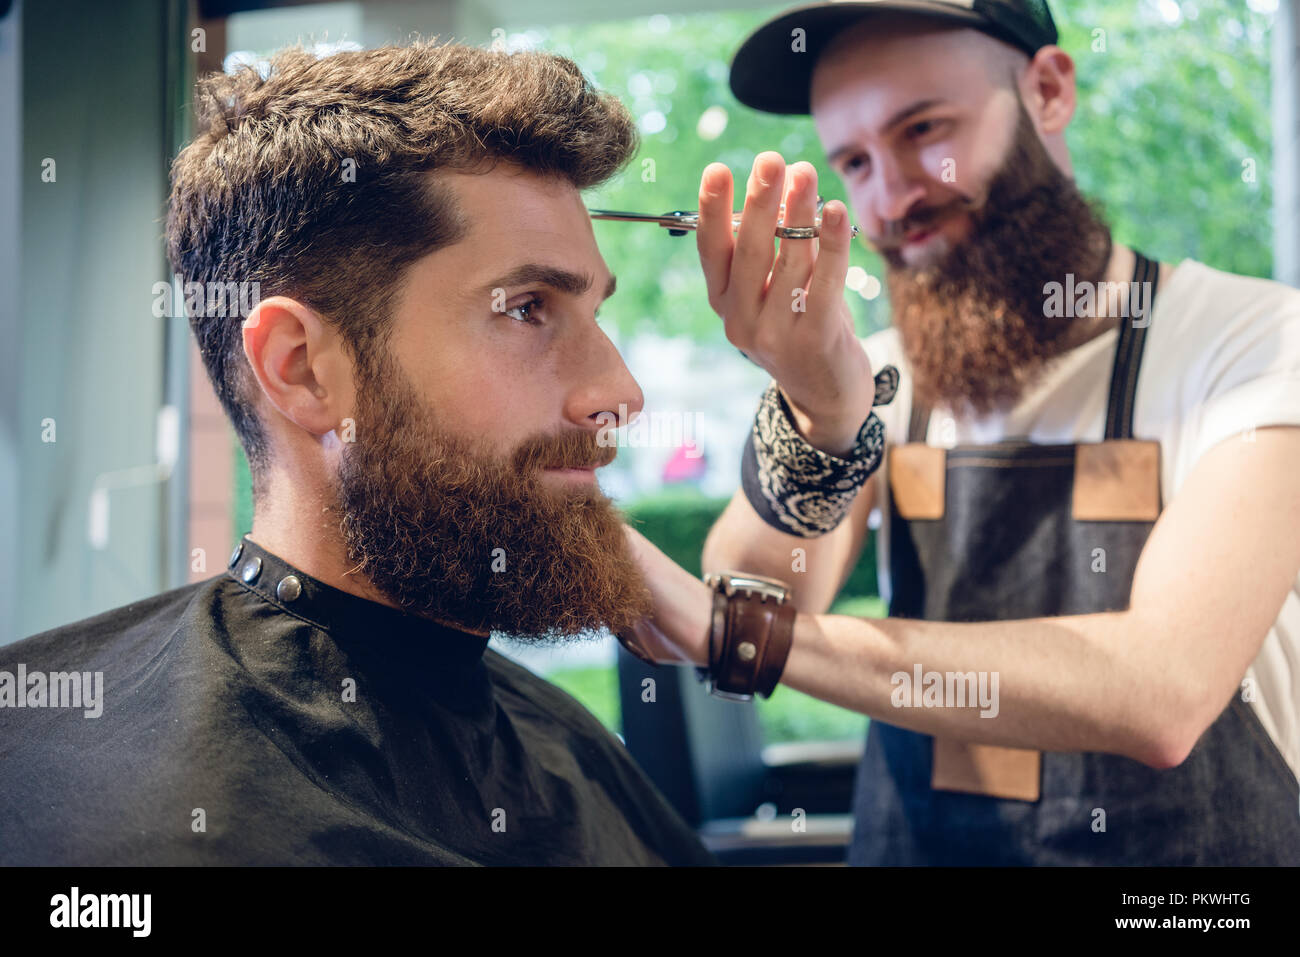 Dedicated hairstylist using scissors and comb - Stock Image